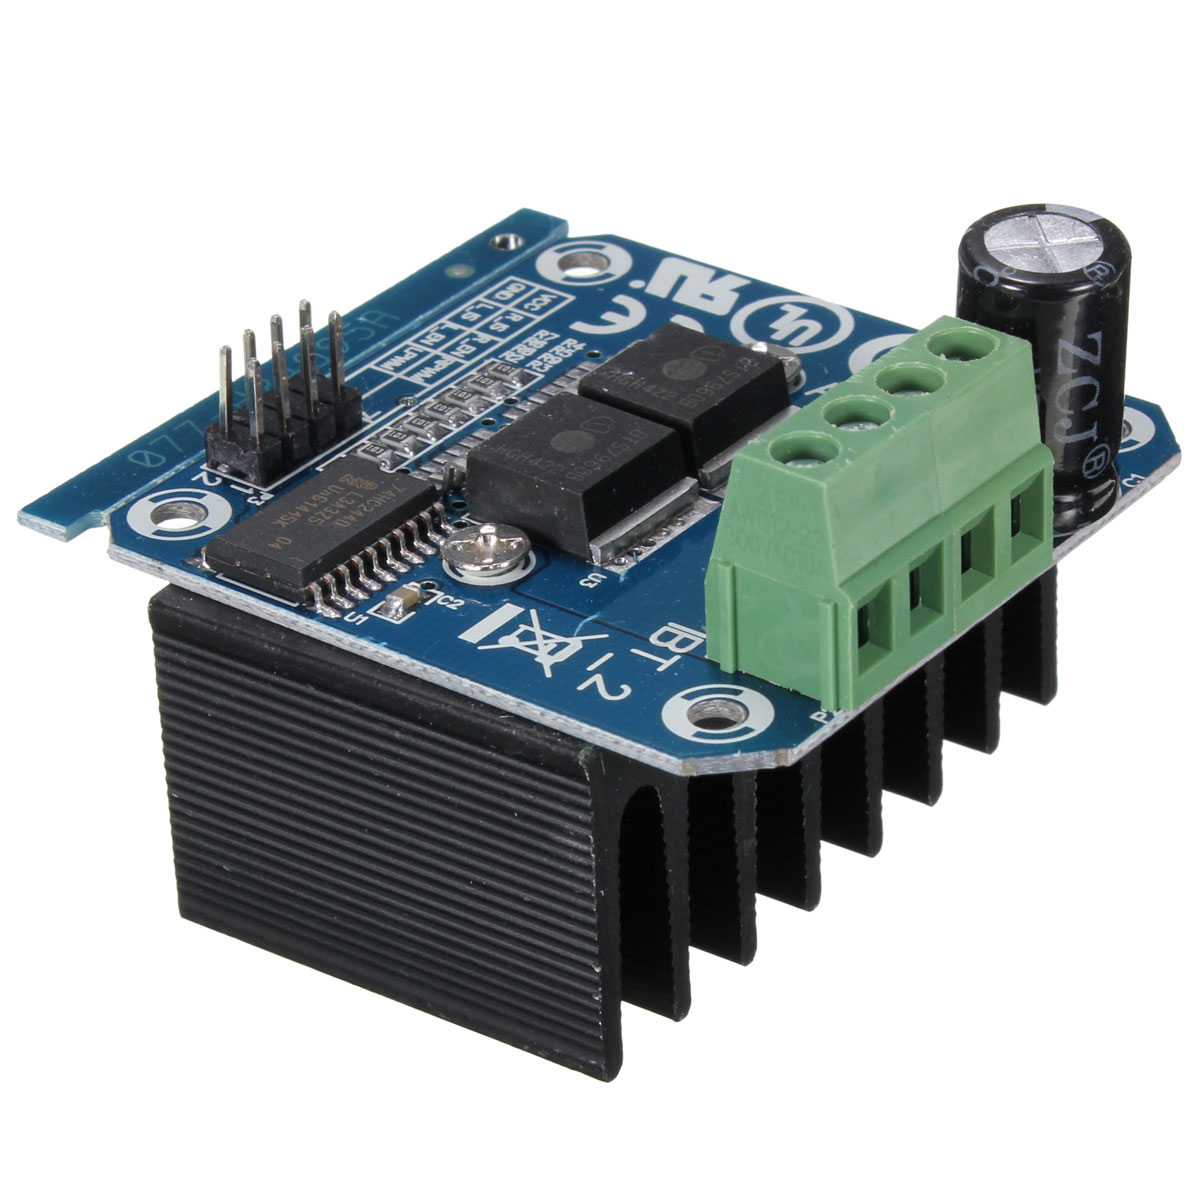 Semiconductor Bts7960b Motor Driver Module 43a H Bridge Drive Pwm Amplifier It Is Such A Complete Hbridge For Arduino